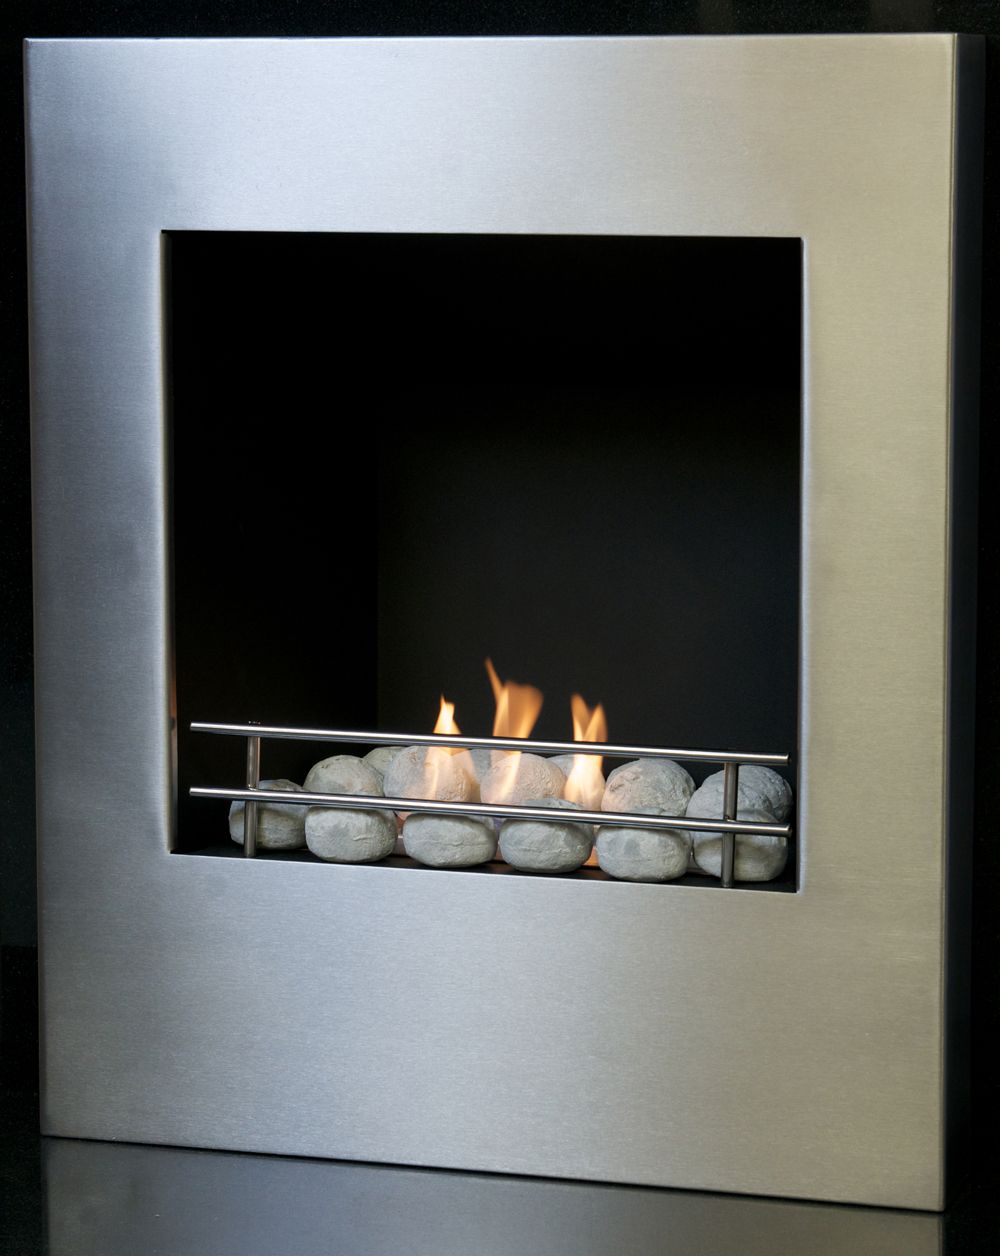 Revive inset bio ethanol flueless real flame fire - Gel Burners ...